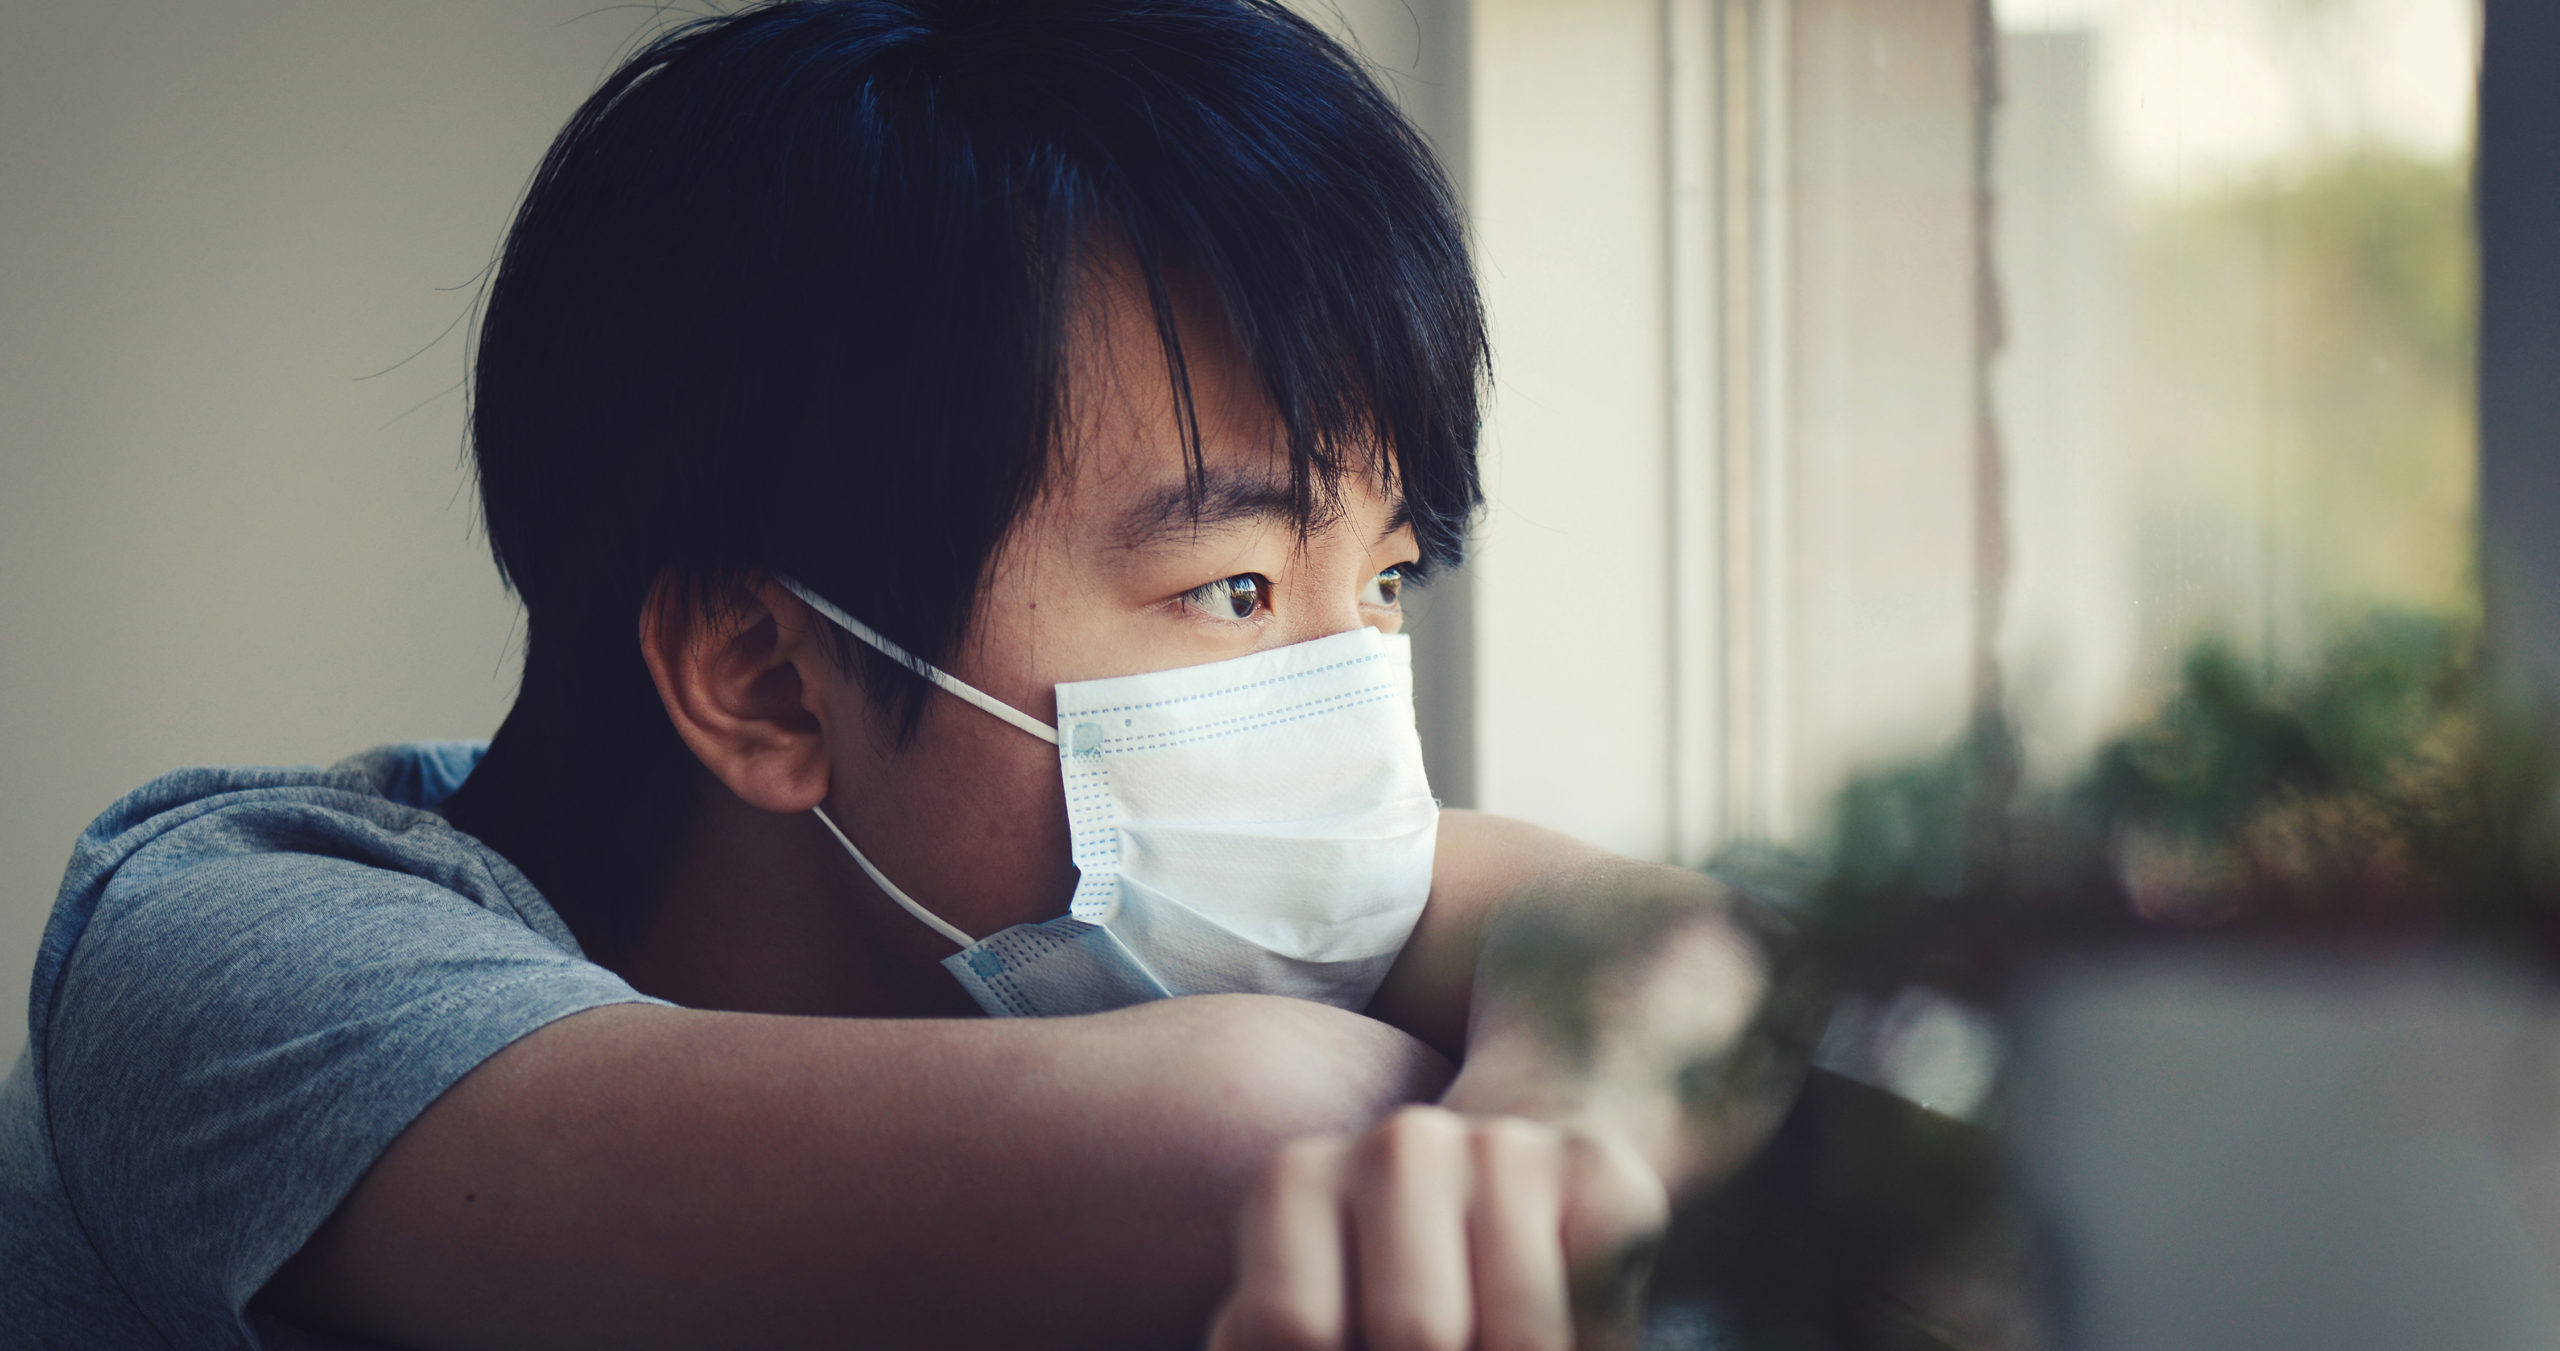 Teen wearing mask looking sad